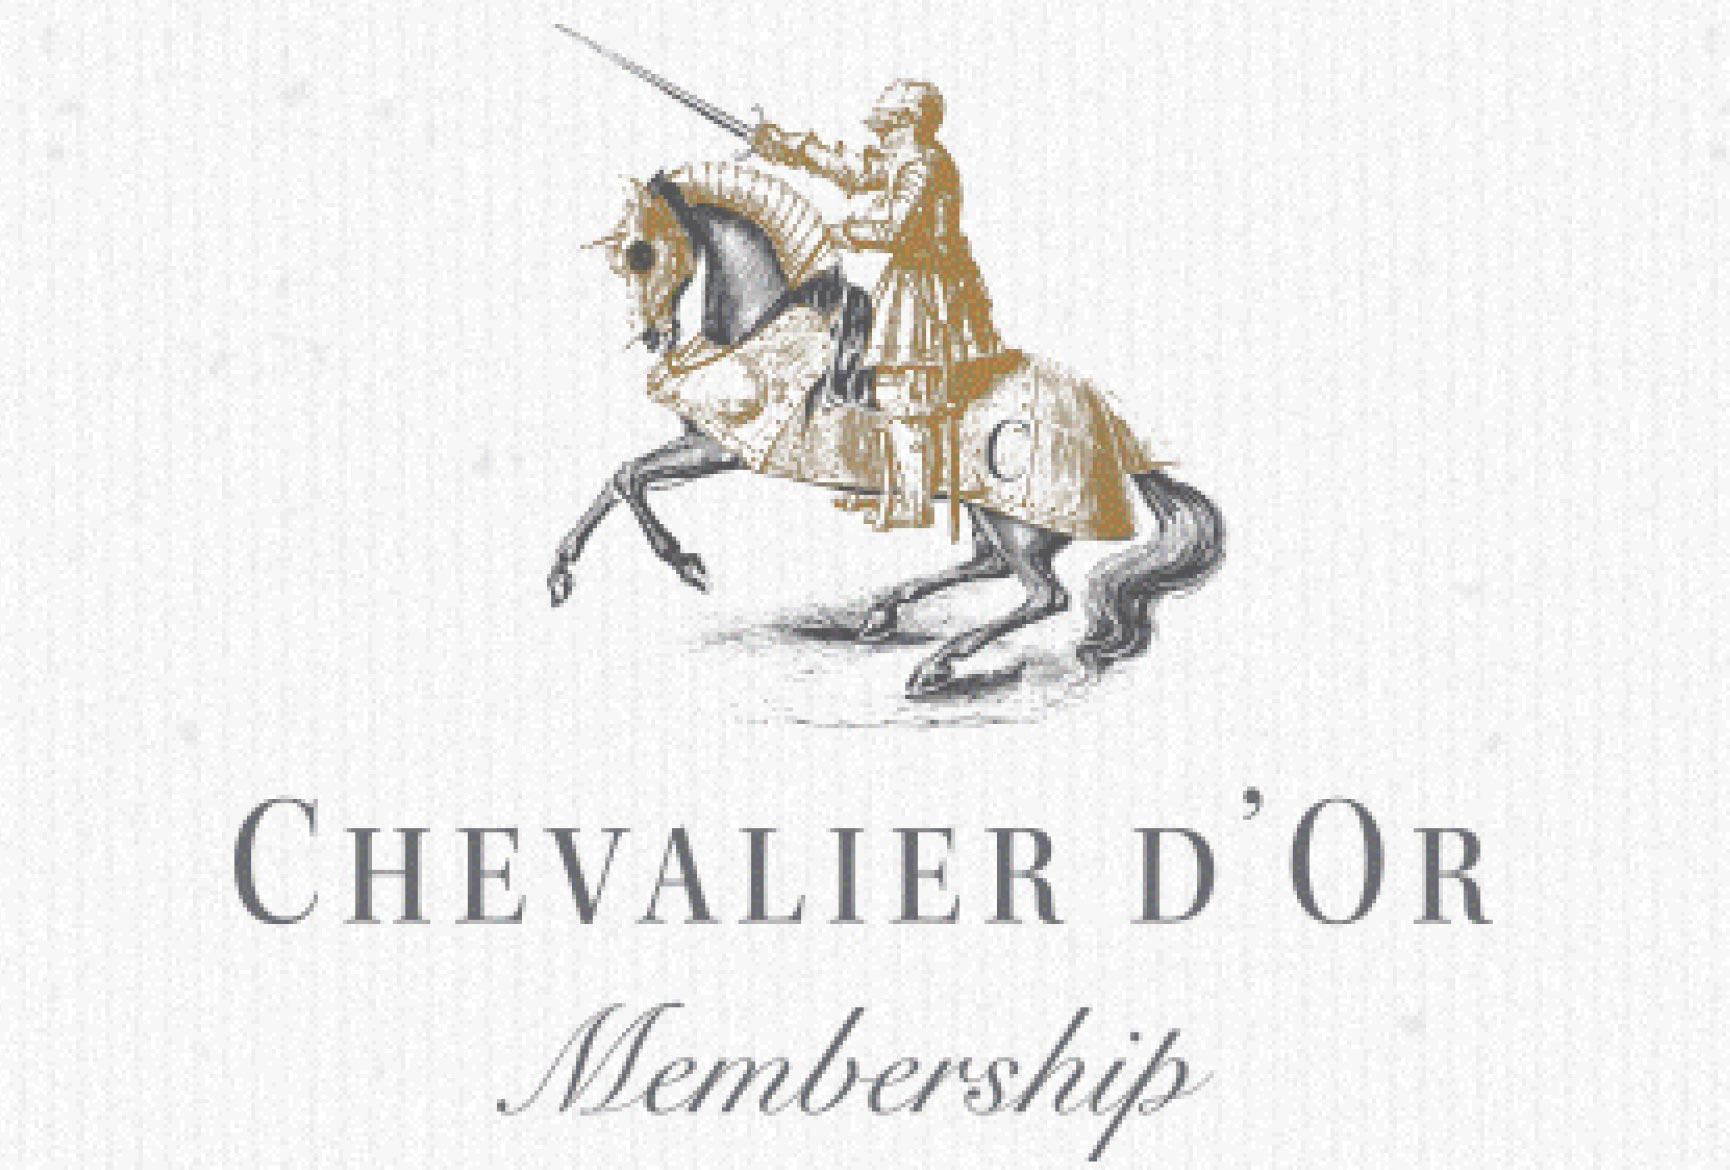 Chevalier d'Or membership